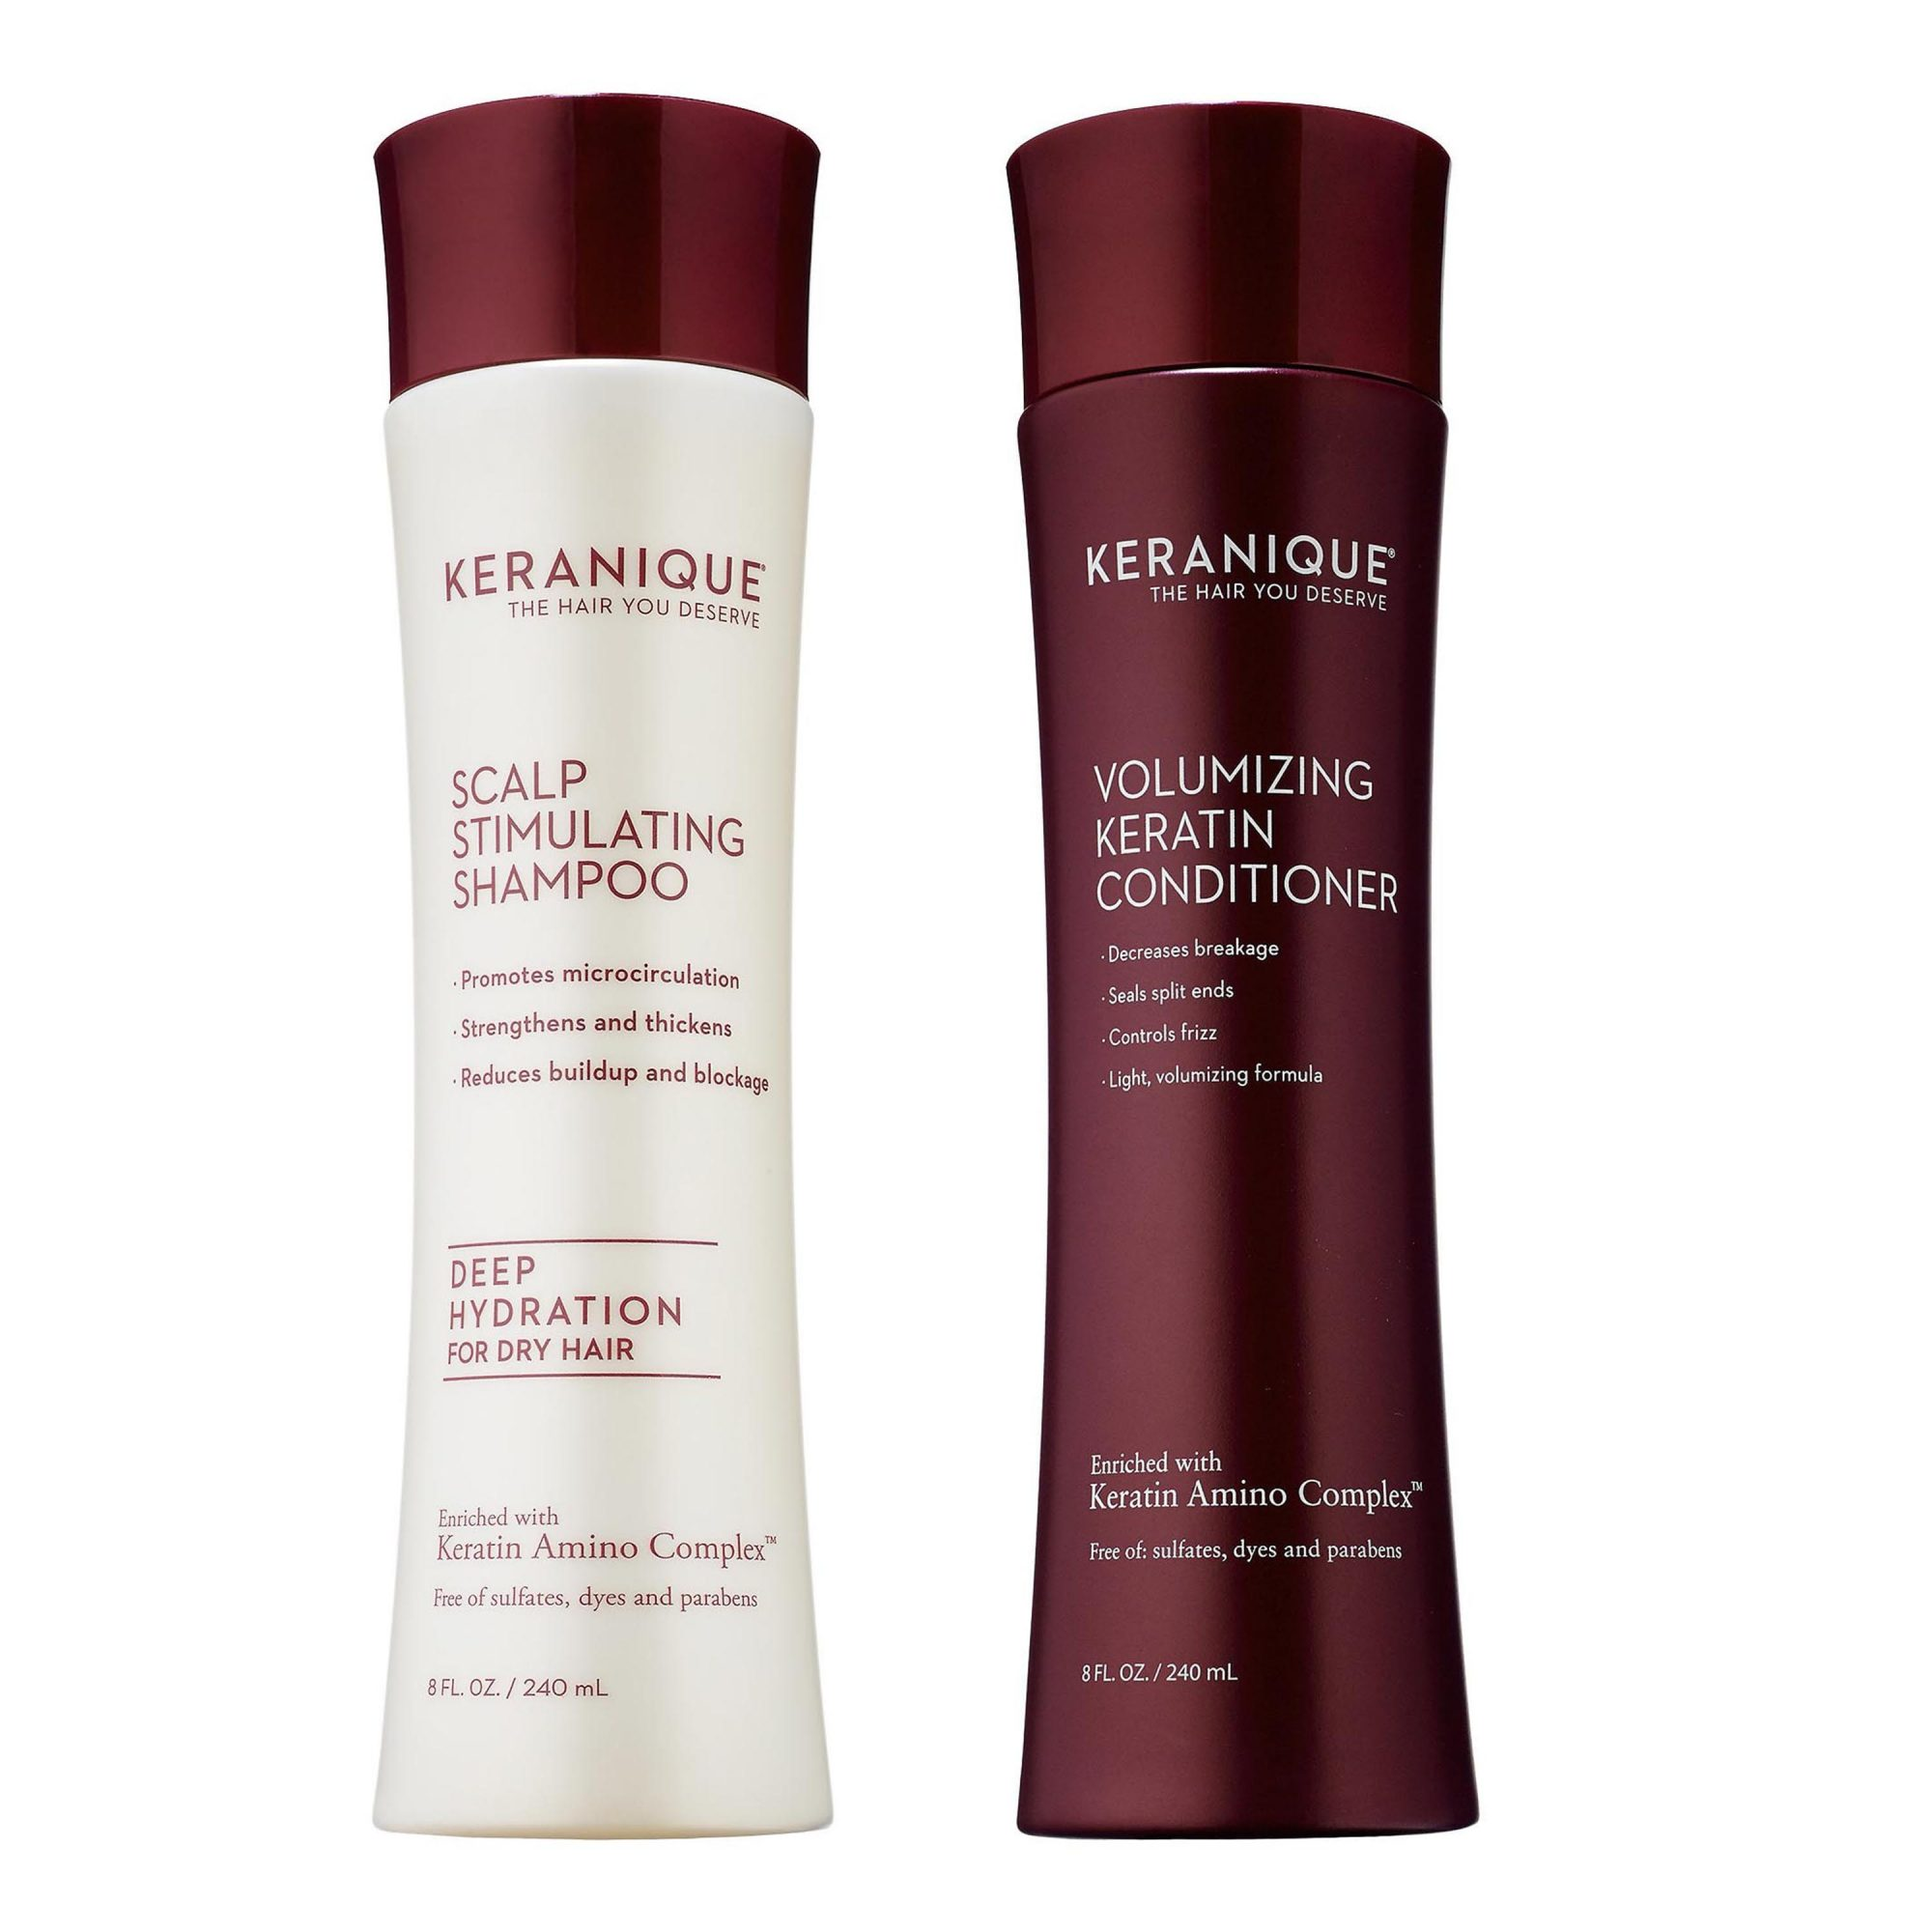 Keranique Volumizing Scalp Stimulating Shampoo